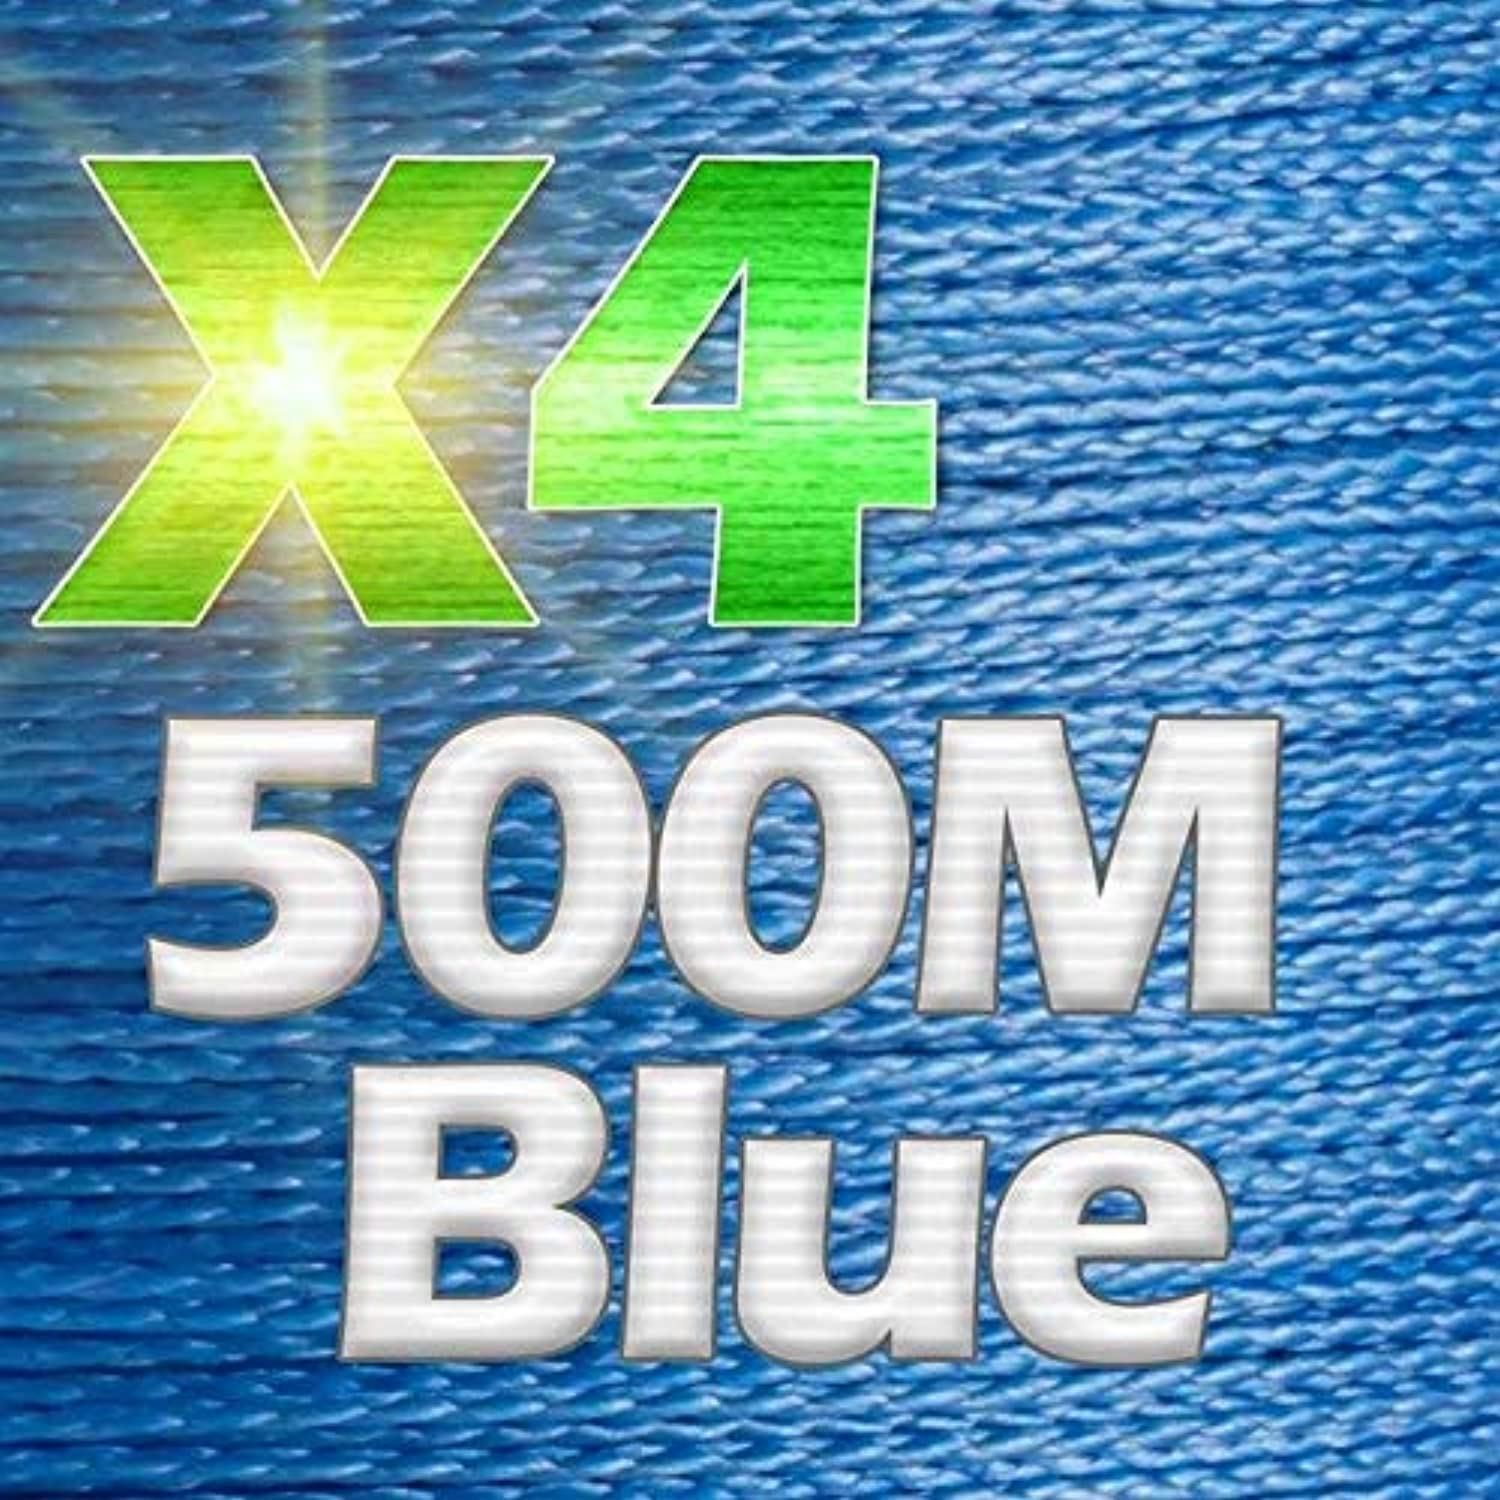 CUSHY JOSBY Multico PE Braided Wire 4 Strands 8 Strands Multifilament Japan Super Strong Fishing Line 300M 500M 1000M 1078LBS New  X4500M, 5.0